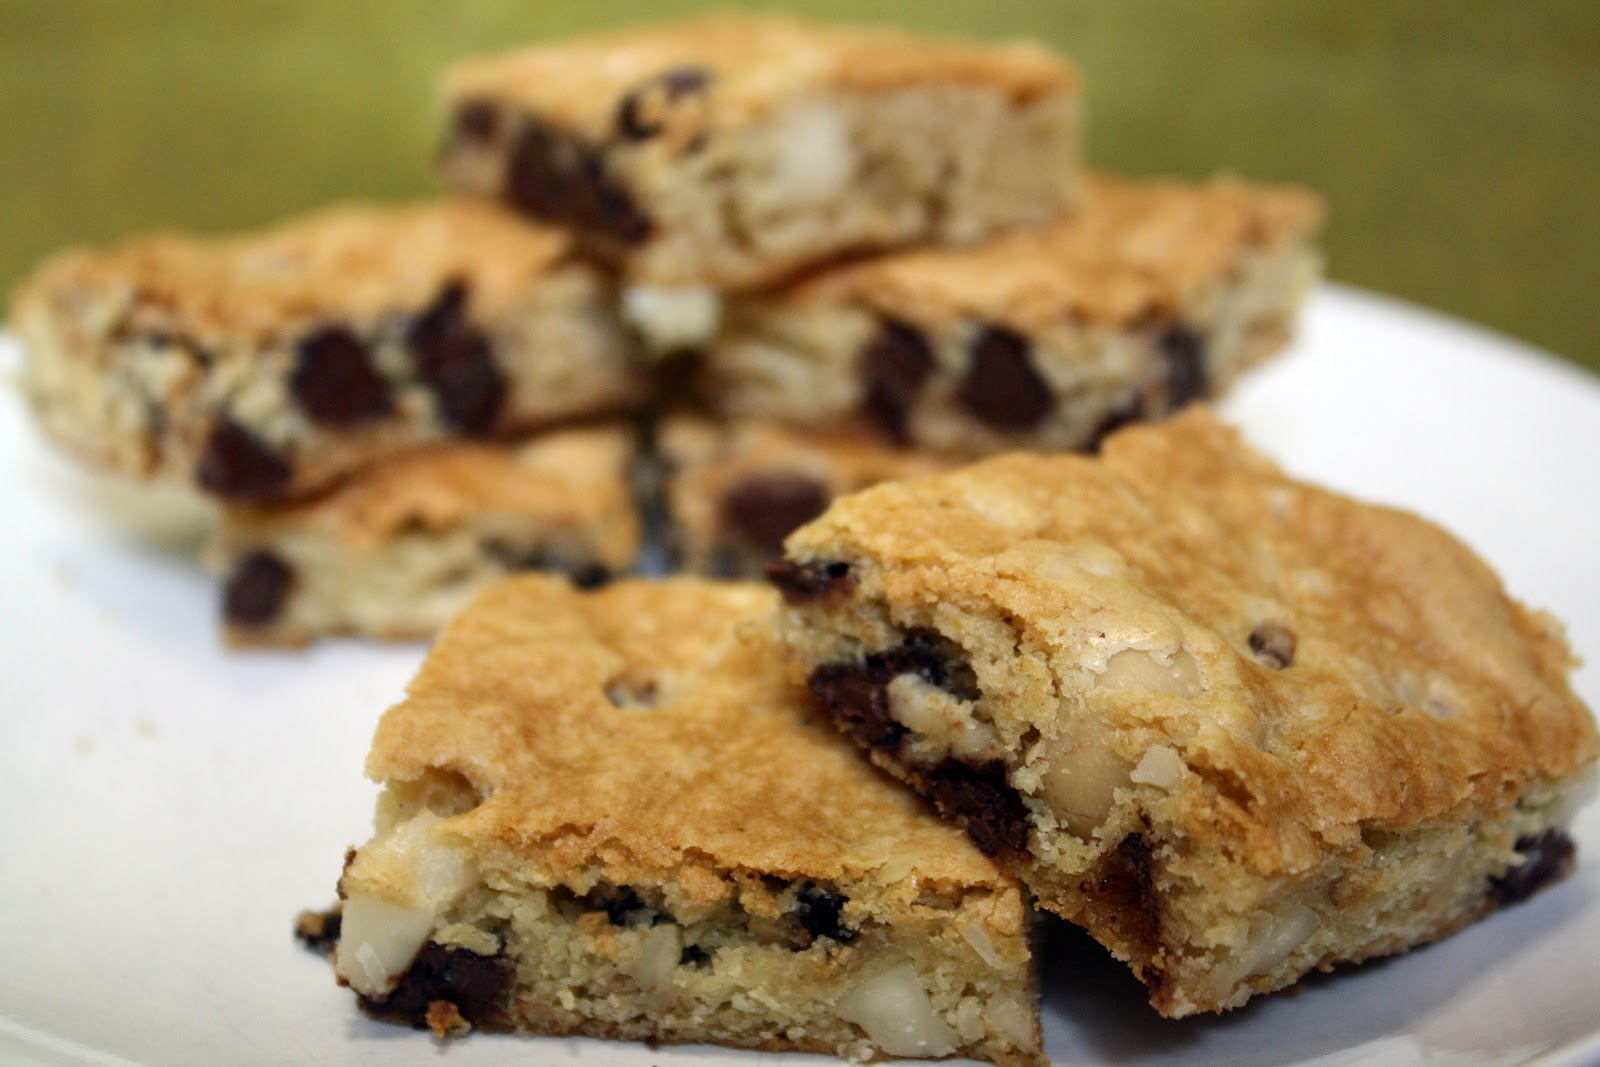 Macadamia Nut And Chocolate Chip Blondies Recipes — Dishmaps